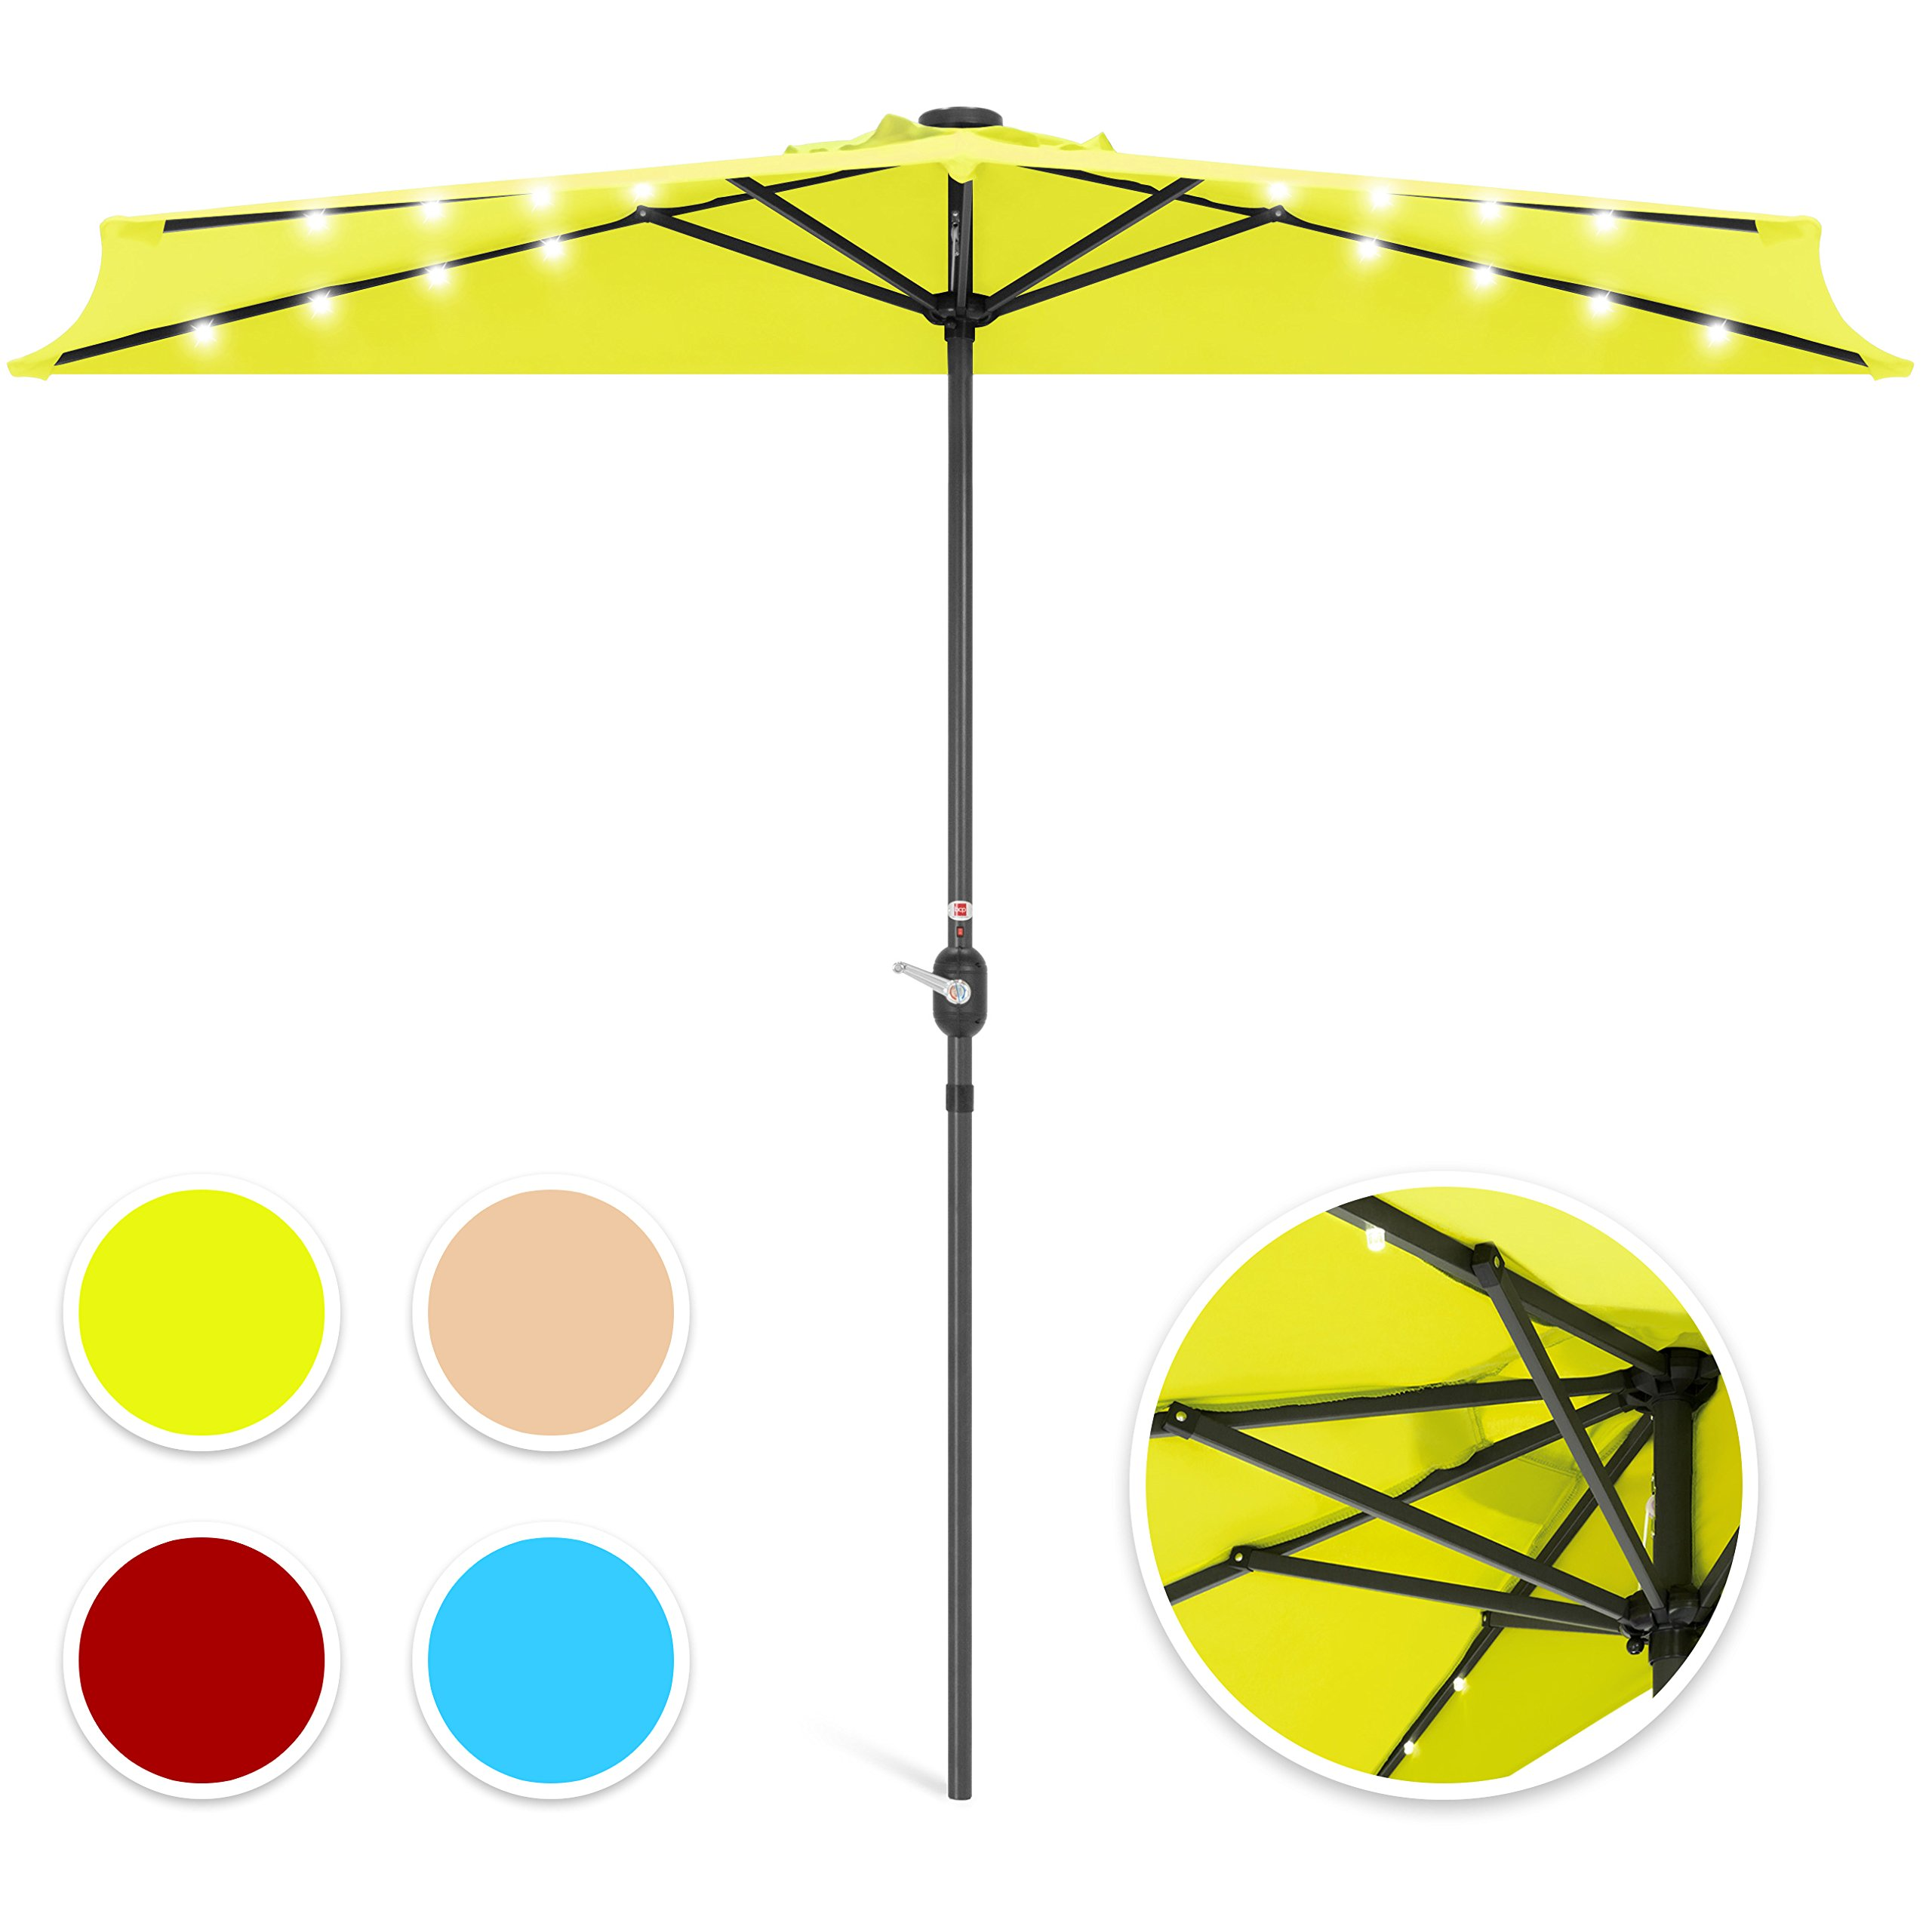 Best Choice Products 8.5ft Solar LED Half Patio Umbrella w/Crank - Light Green by Best Choice Products